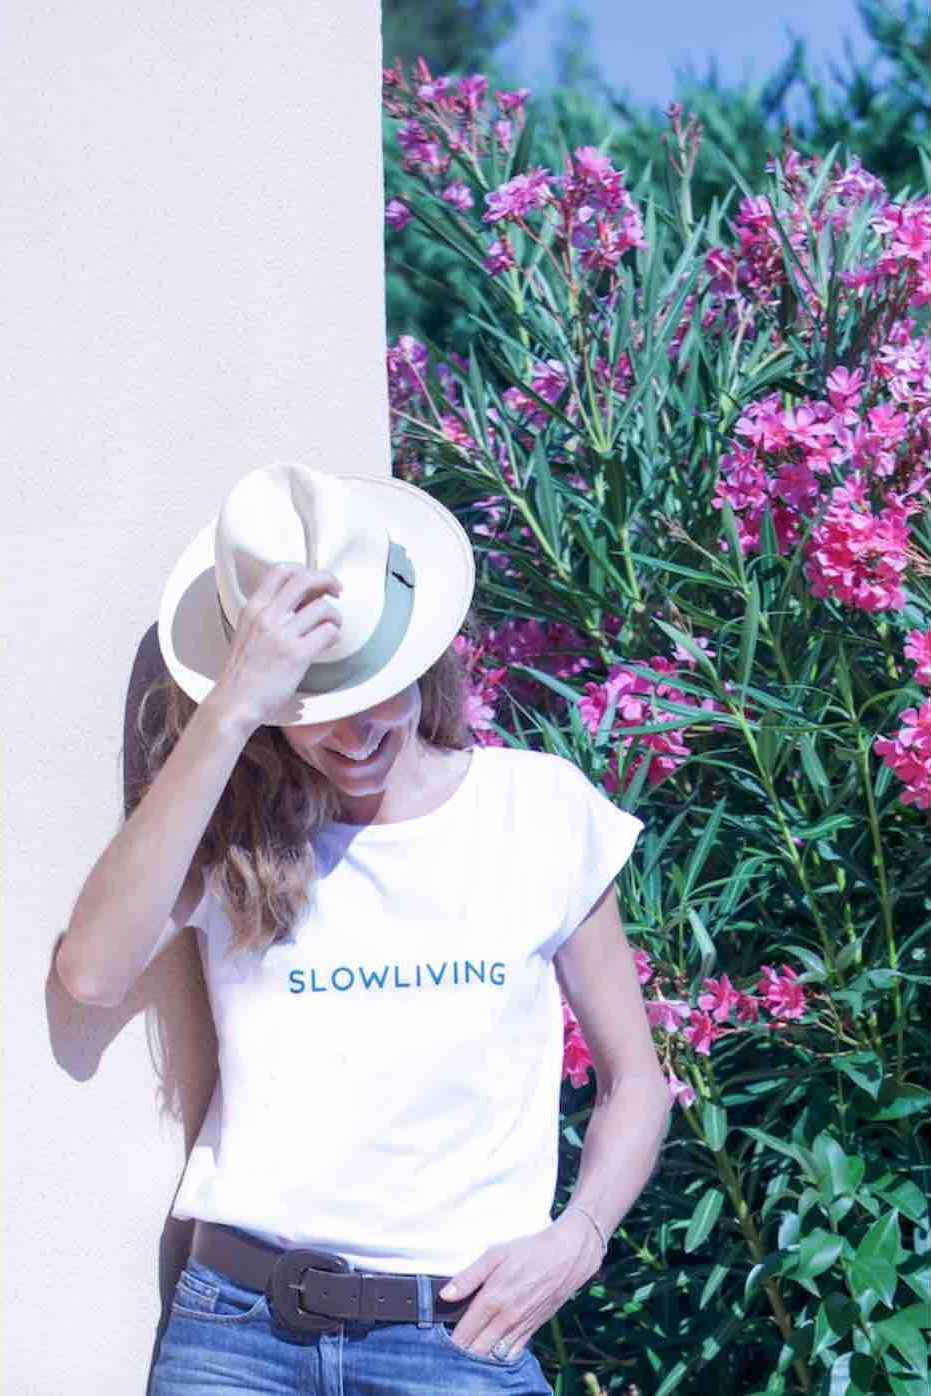 SLOW LIVING - What if happiness was the key to discovering a simpler, more fulfilling existence?